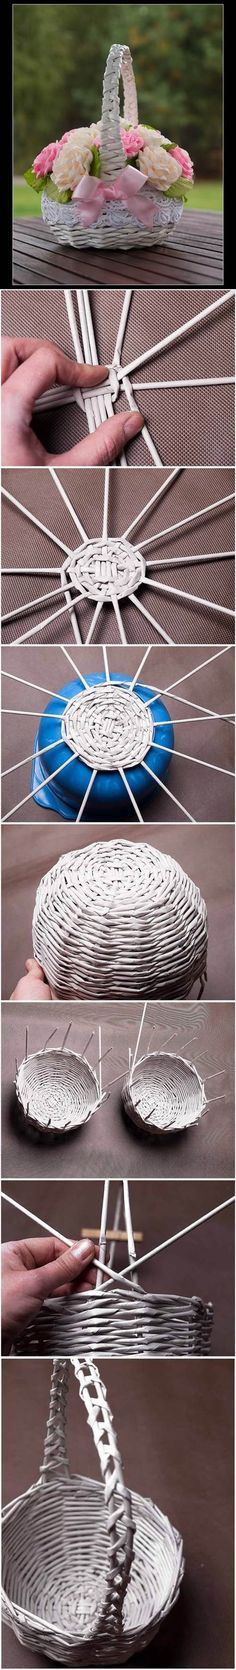 DIY Newspaper Tubes Weaving Basket | iCreativeIdeas.com Follow Us on Facebook --> https://www.facebook.com/icreativeideas